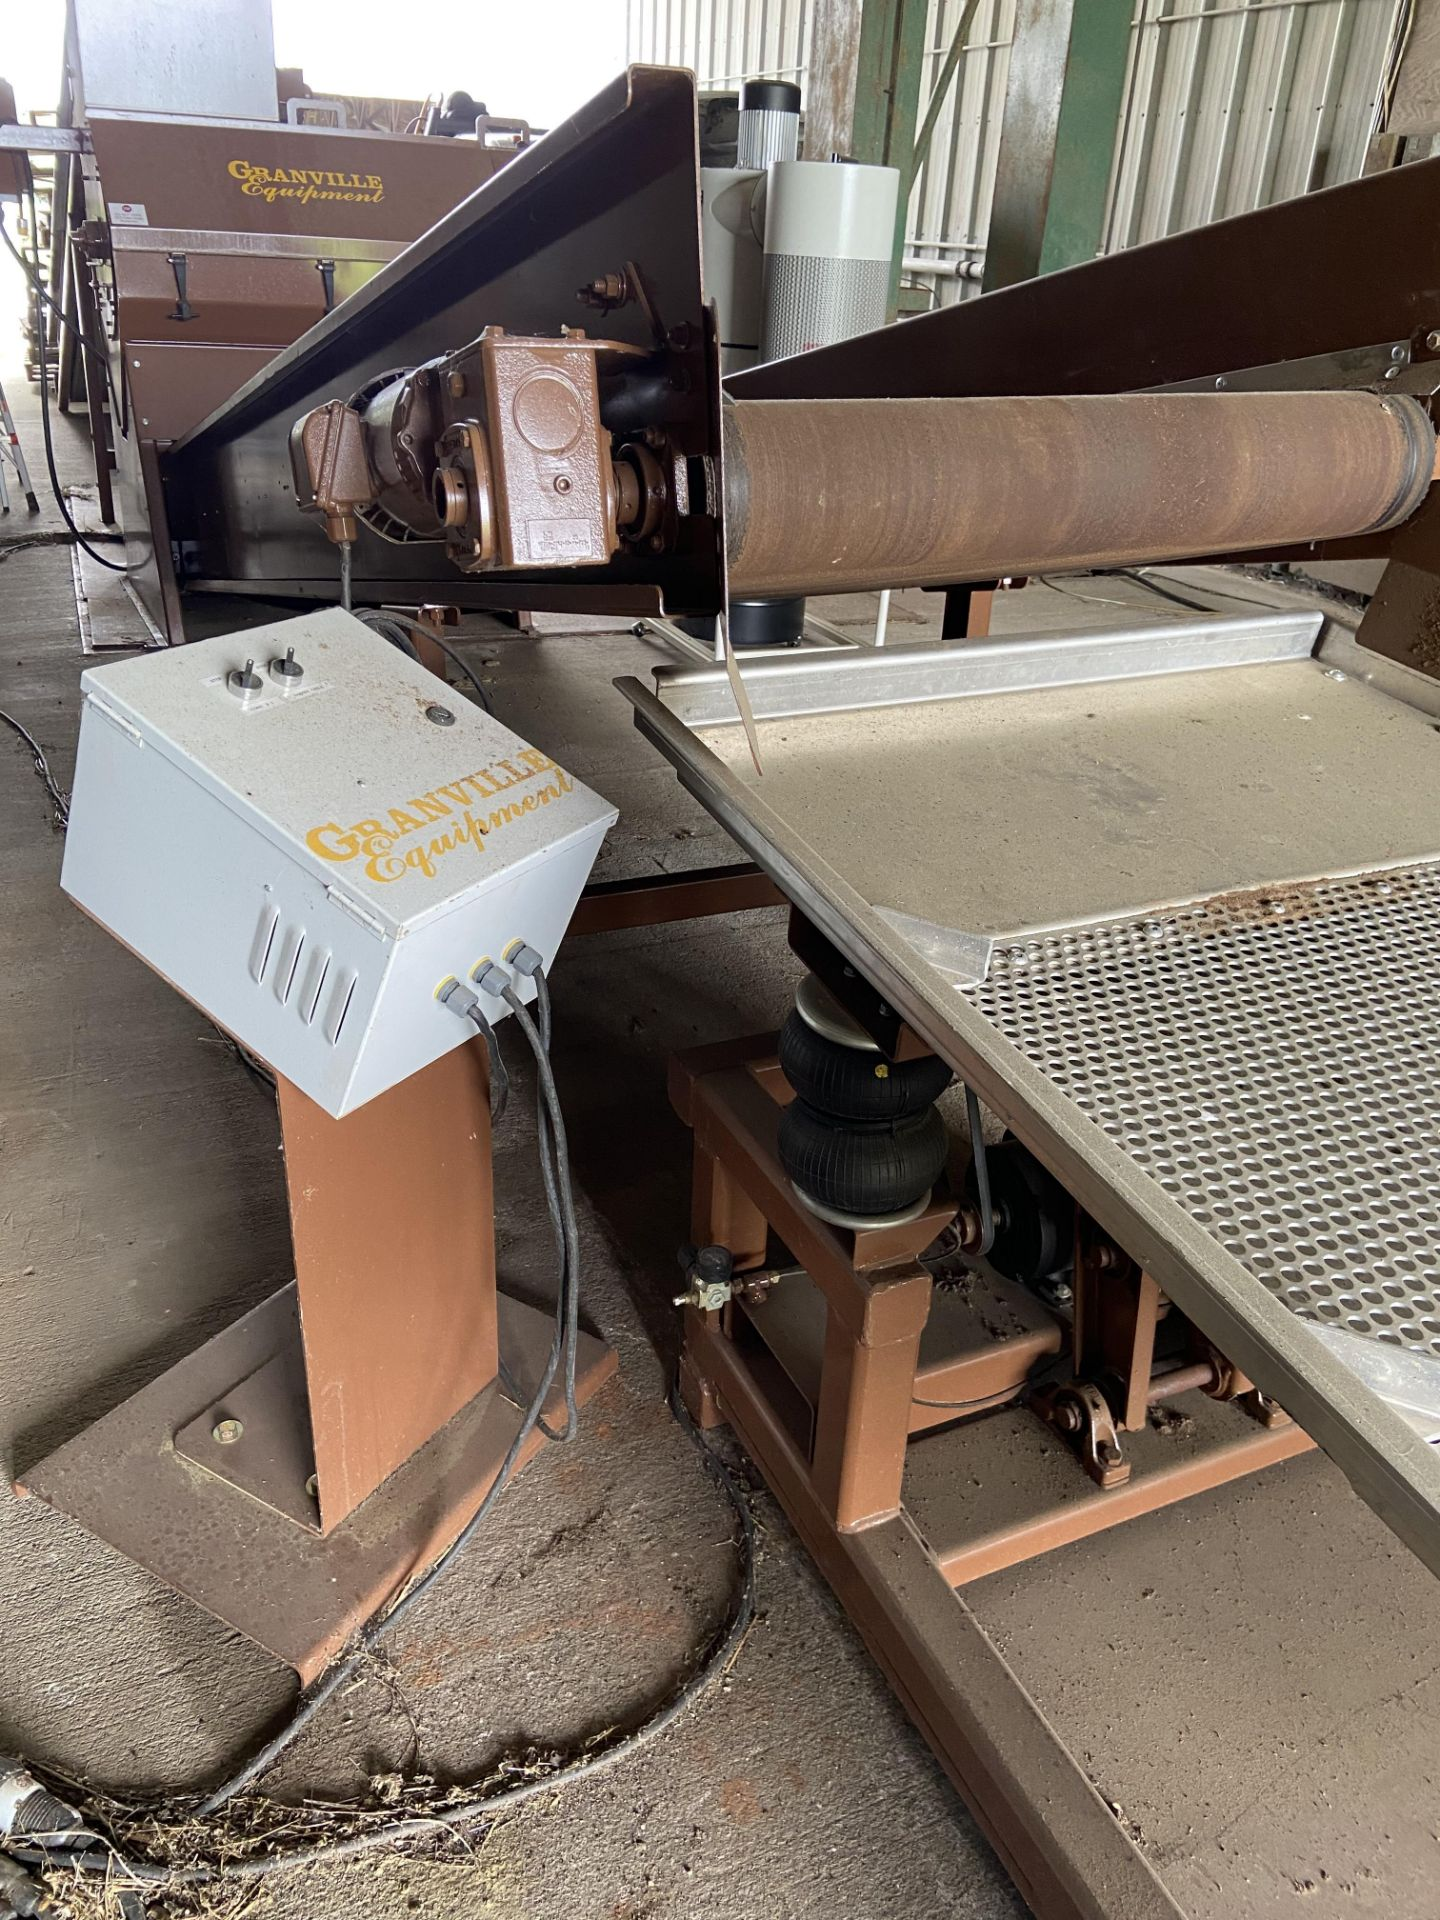 Used Granville Hemp Flower Extractor Includes: Hemp Flower Extractor w/ Vacuum & Conveying System - Image 16 of 17